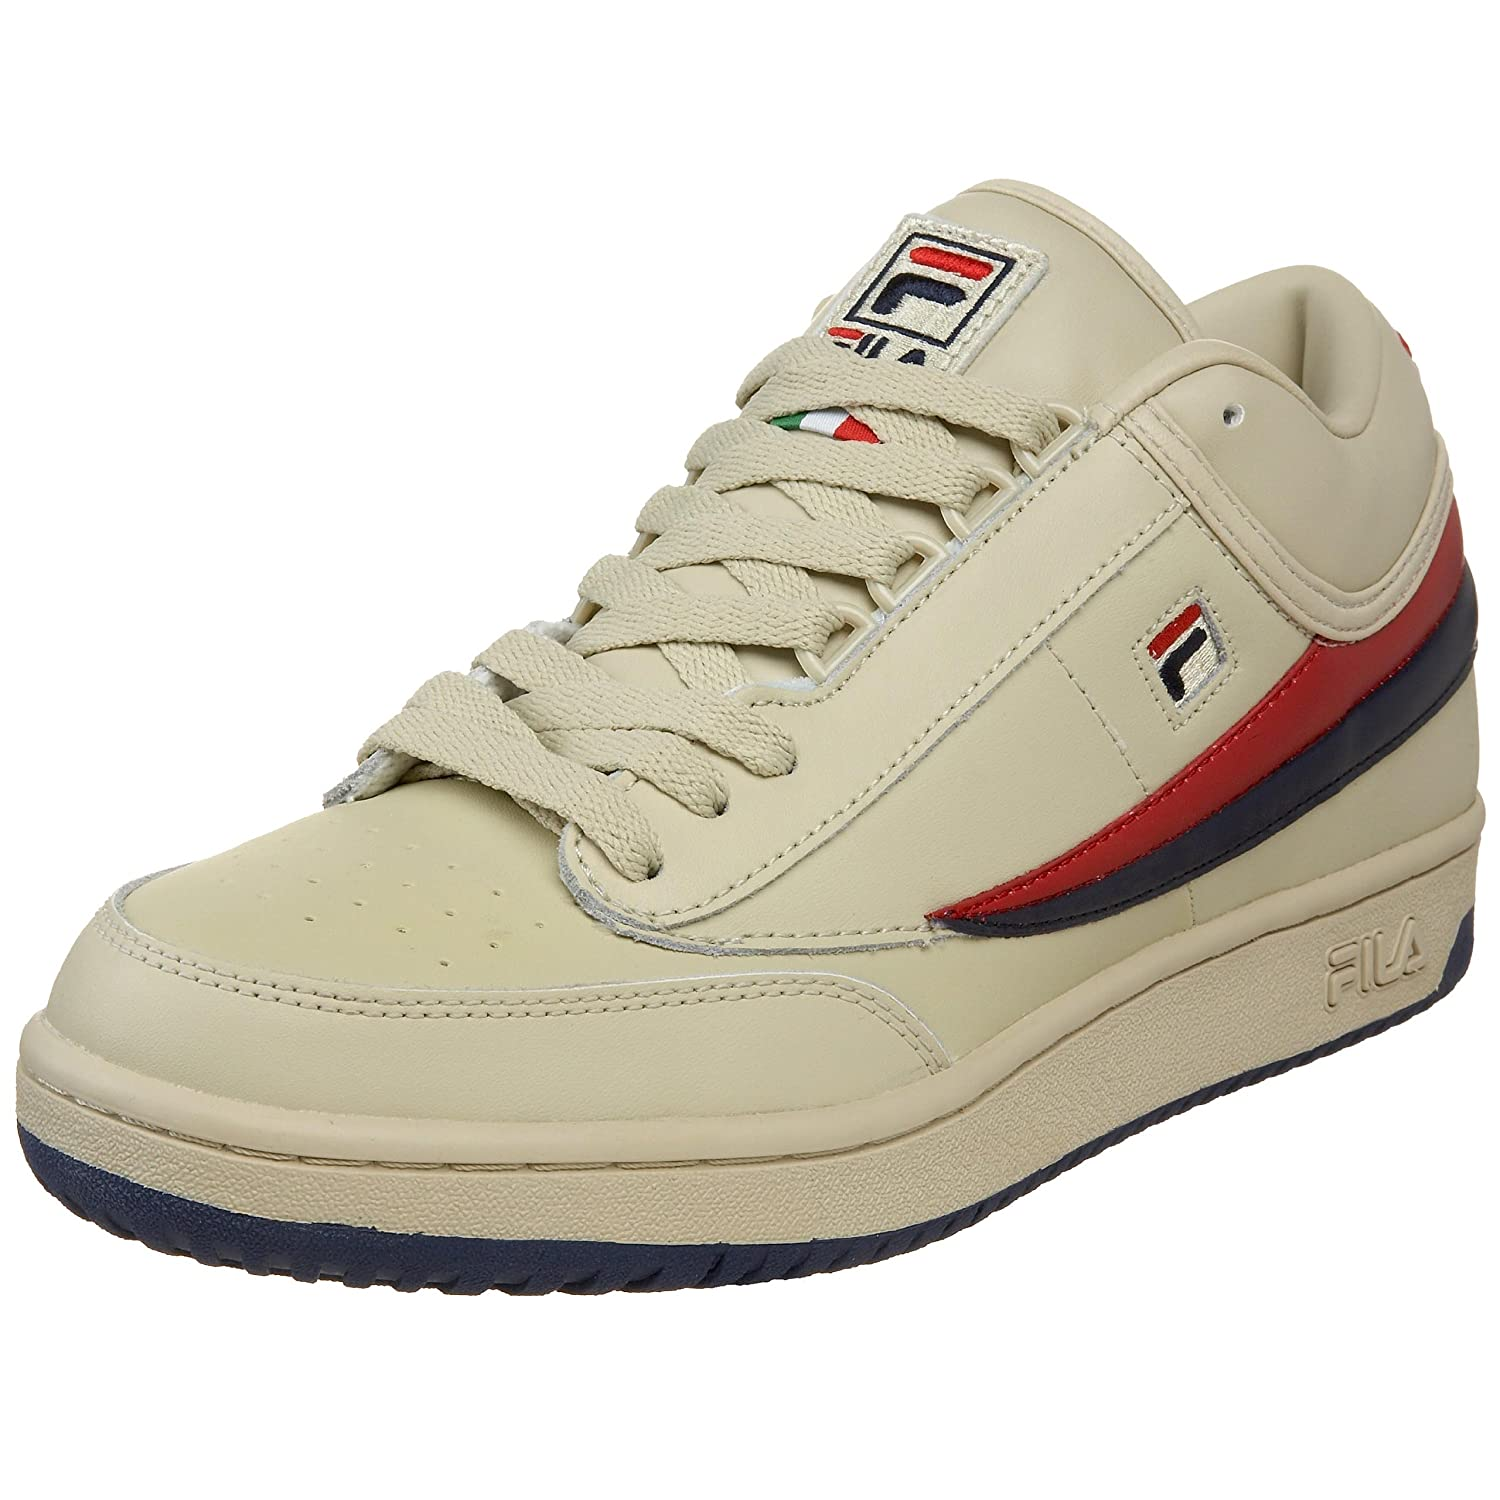 Fila Mens T1 MID Fashion Sneaker